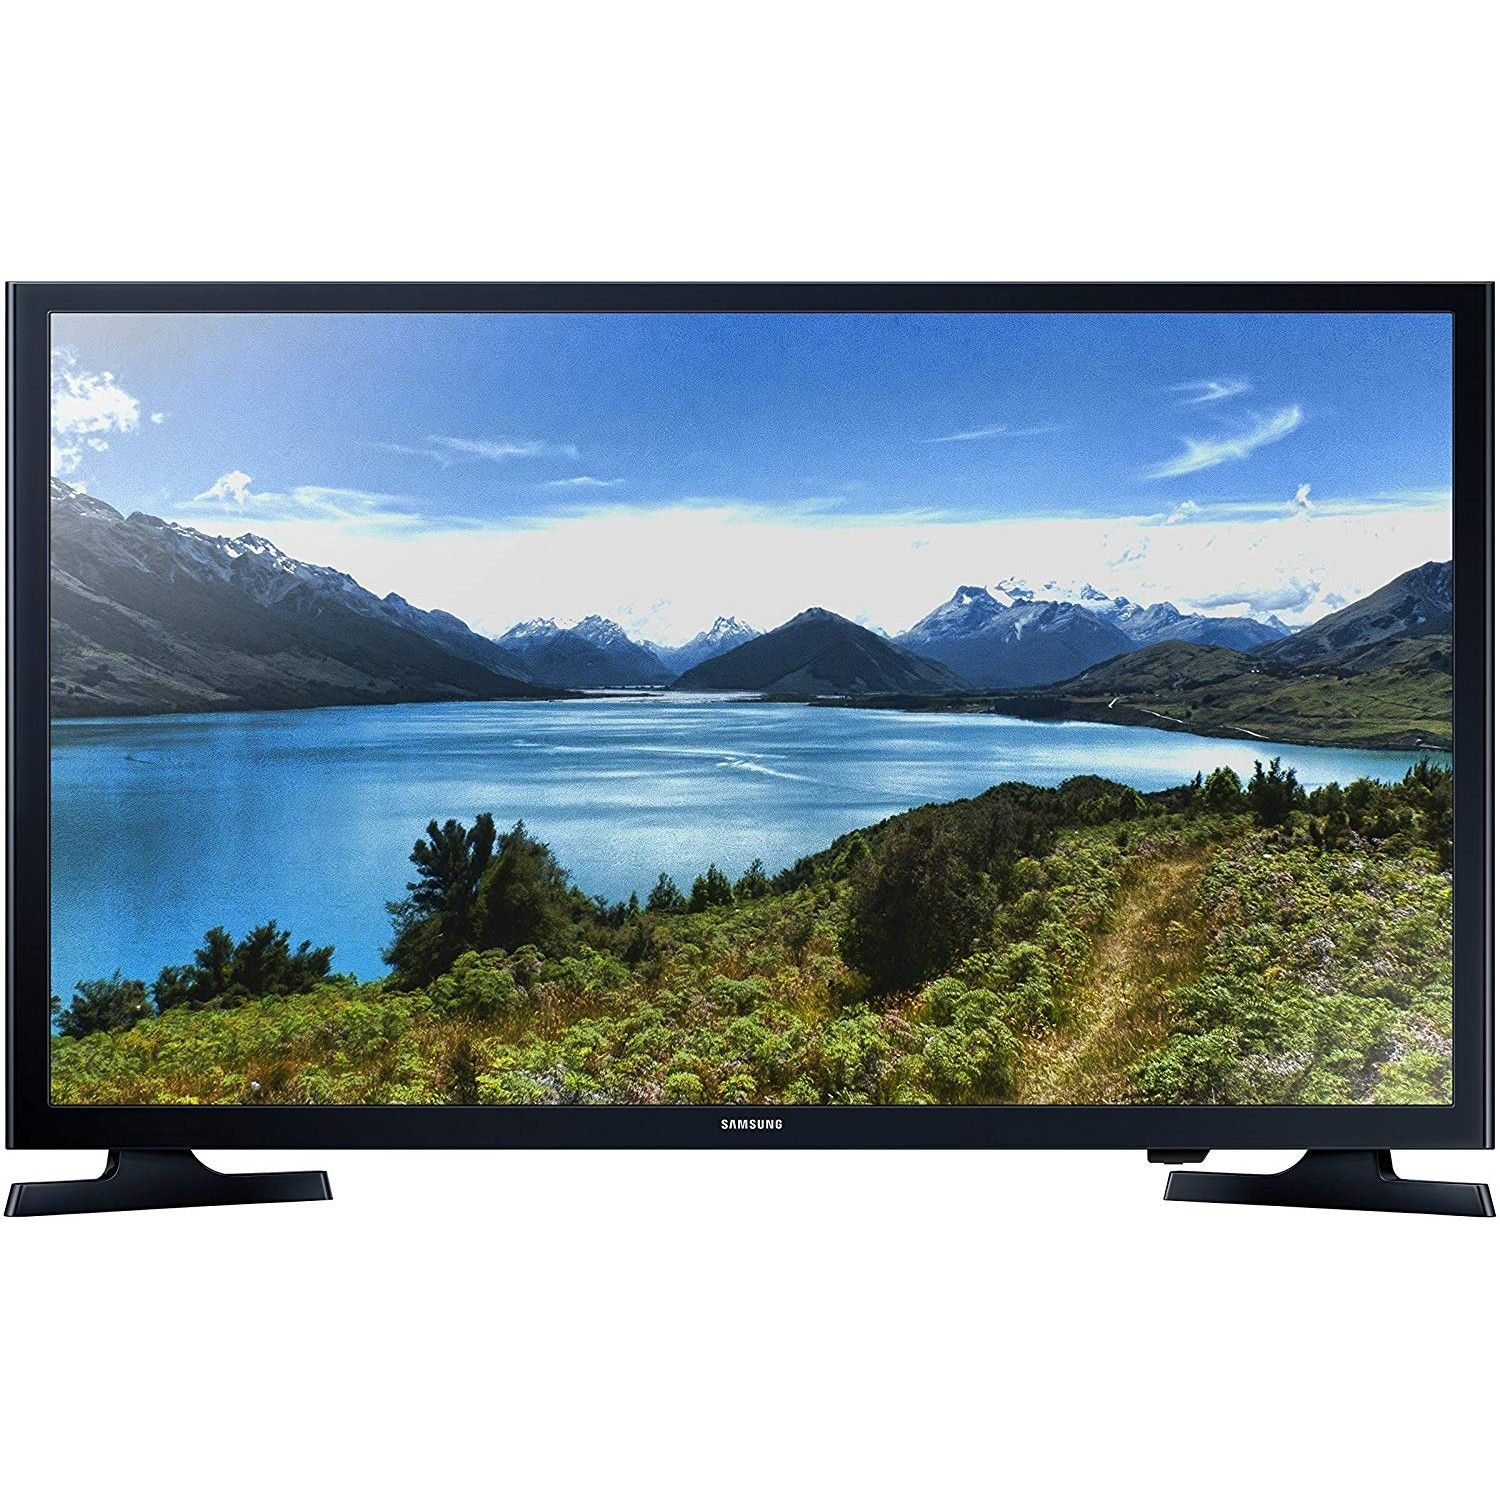 Samsung 32j4003 32 Inch Hd Ready Led Tv Price In India November 27 2020 Full Specification Features Mekrafts Led Tv Samsung Smart Tv Samsung 32 class led n5300 series 1080p